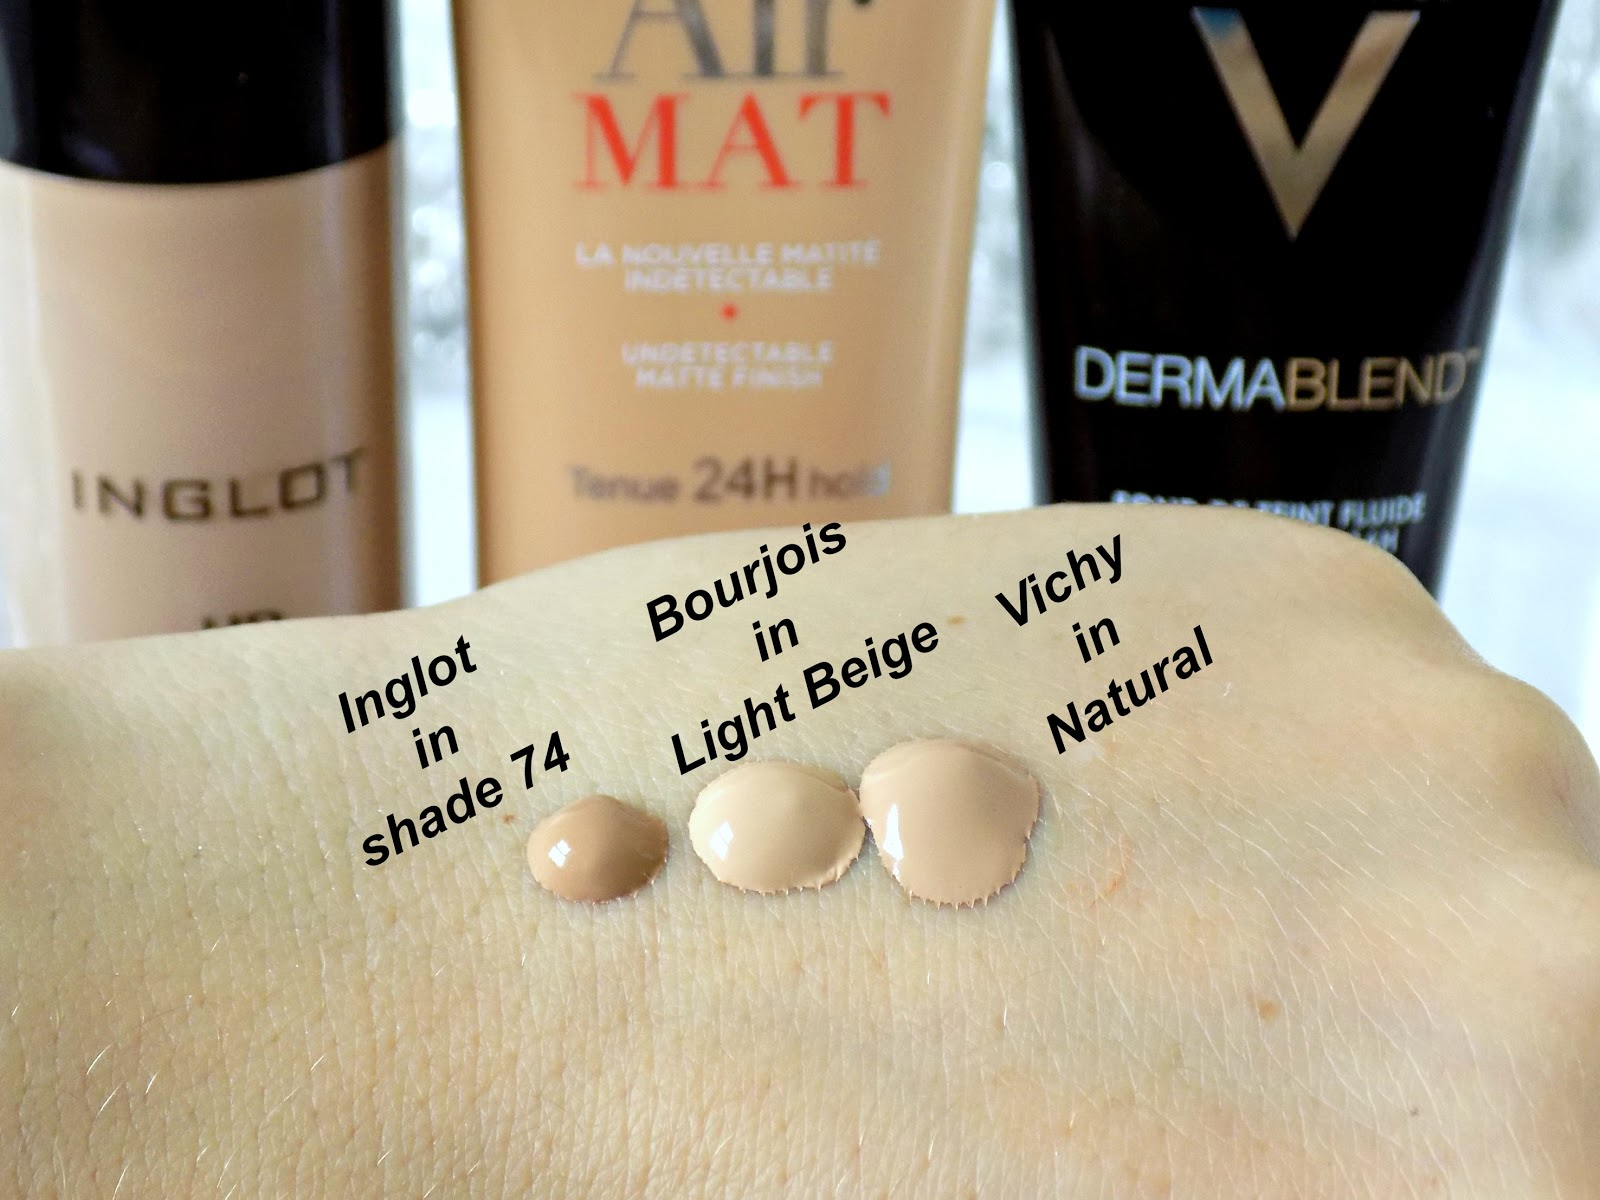 Inglot HD foundation